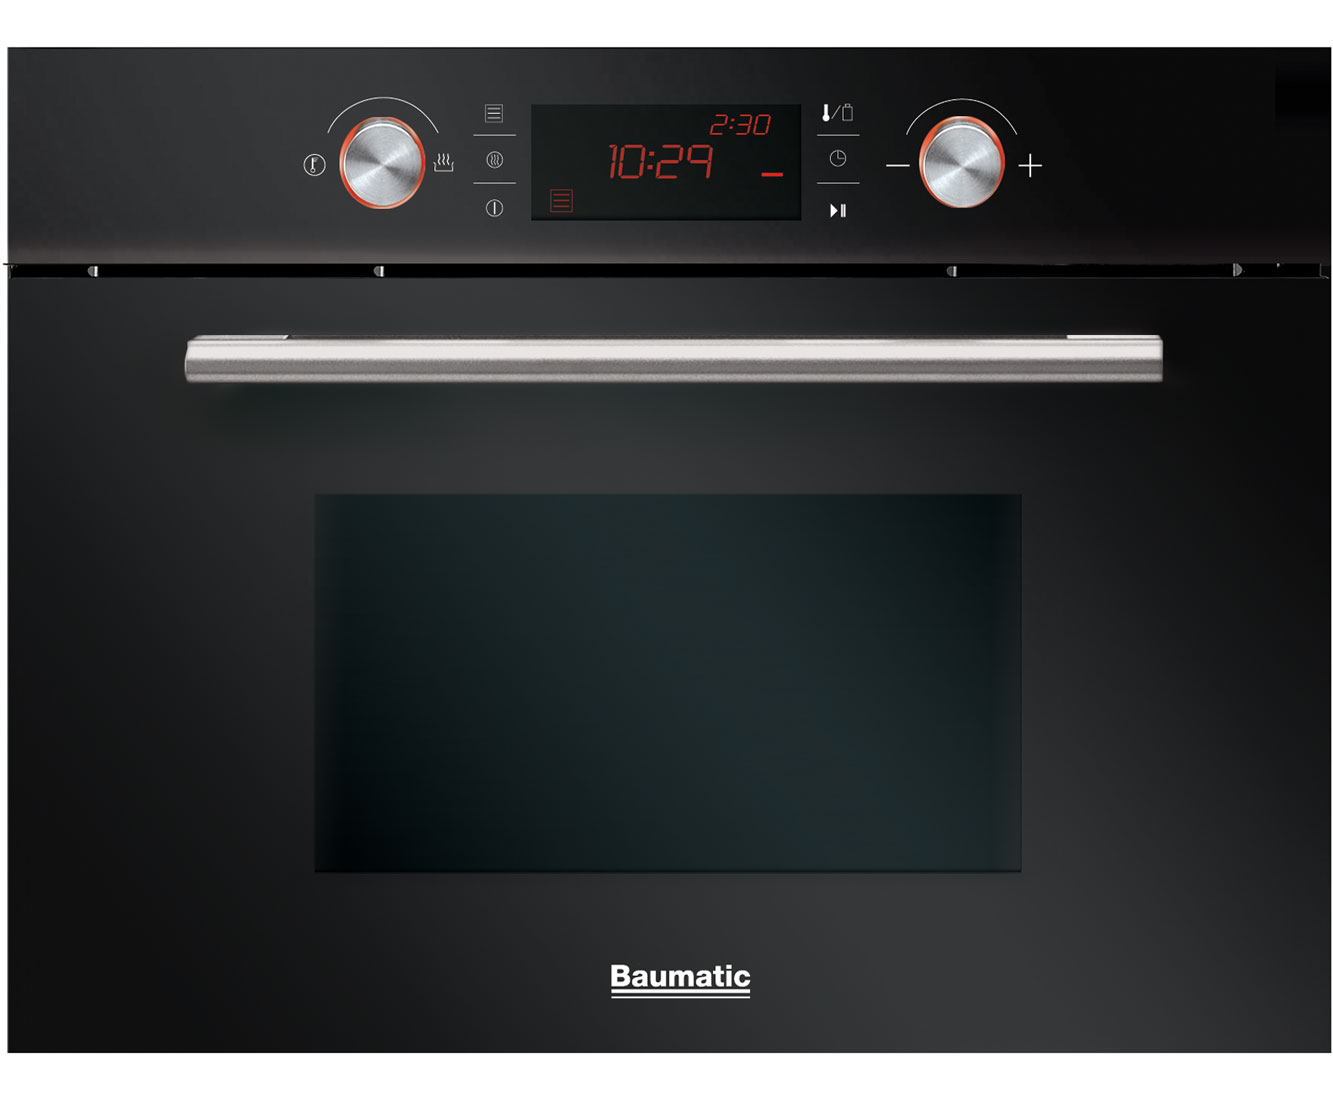 Baumatic BMC460BGL Integrated Microwave Oven in Black